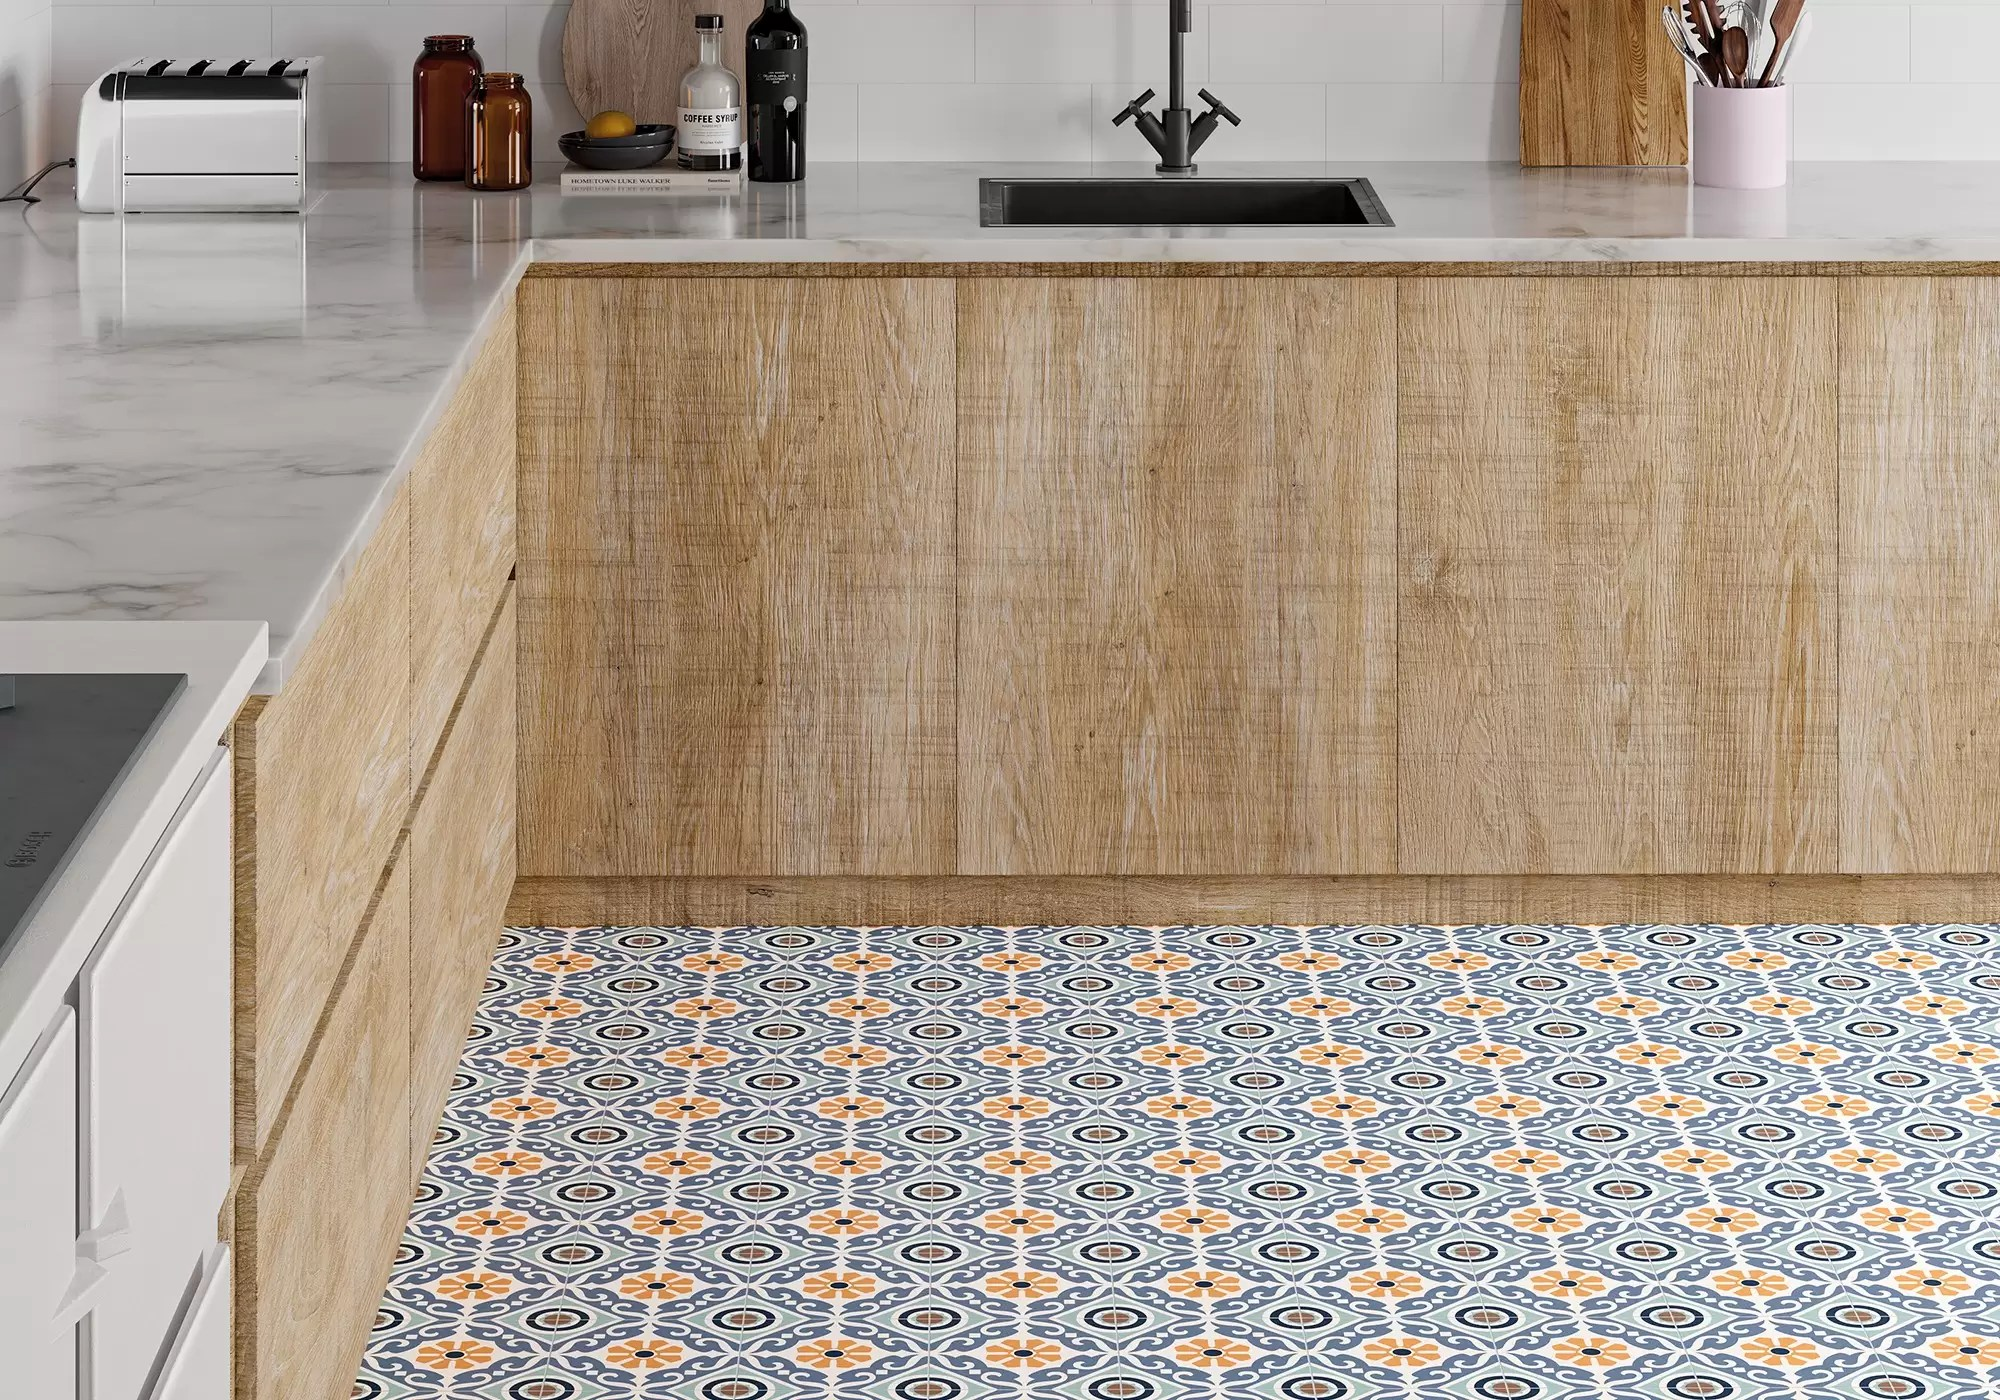 Musa Mix by Gayafores hydraulics porcelain tiles